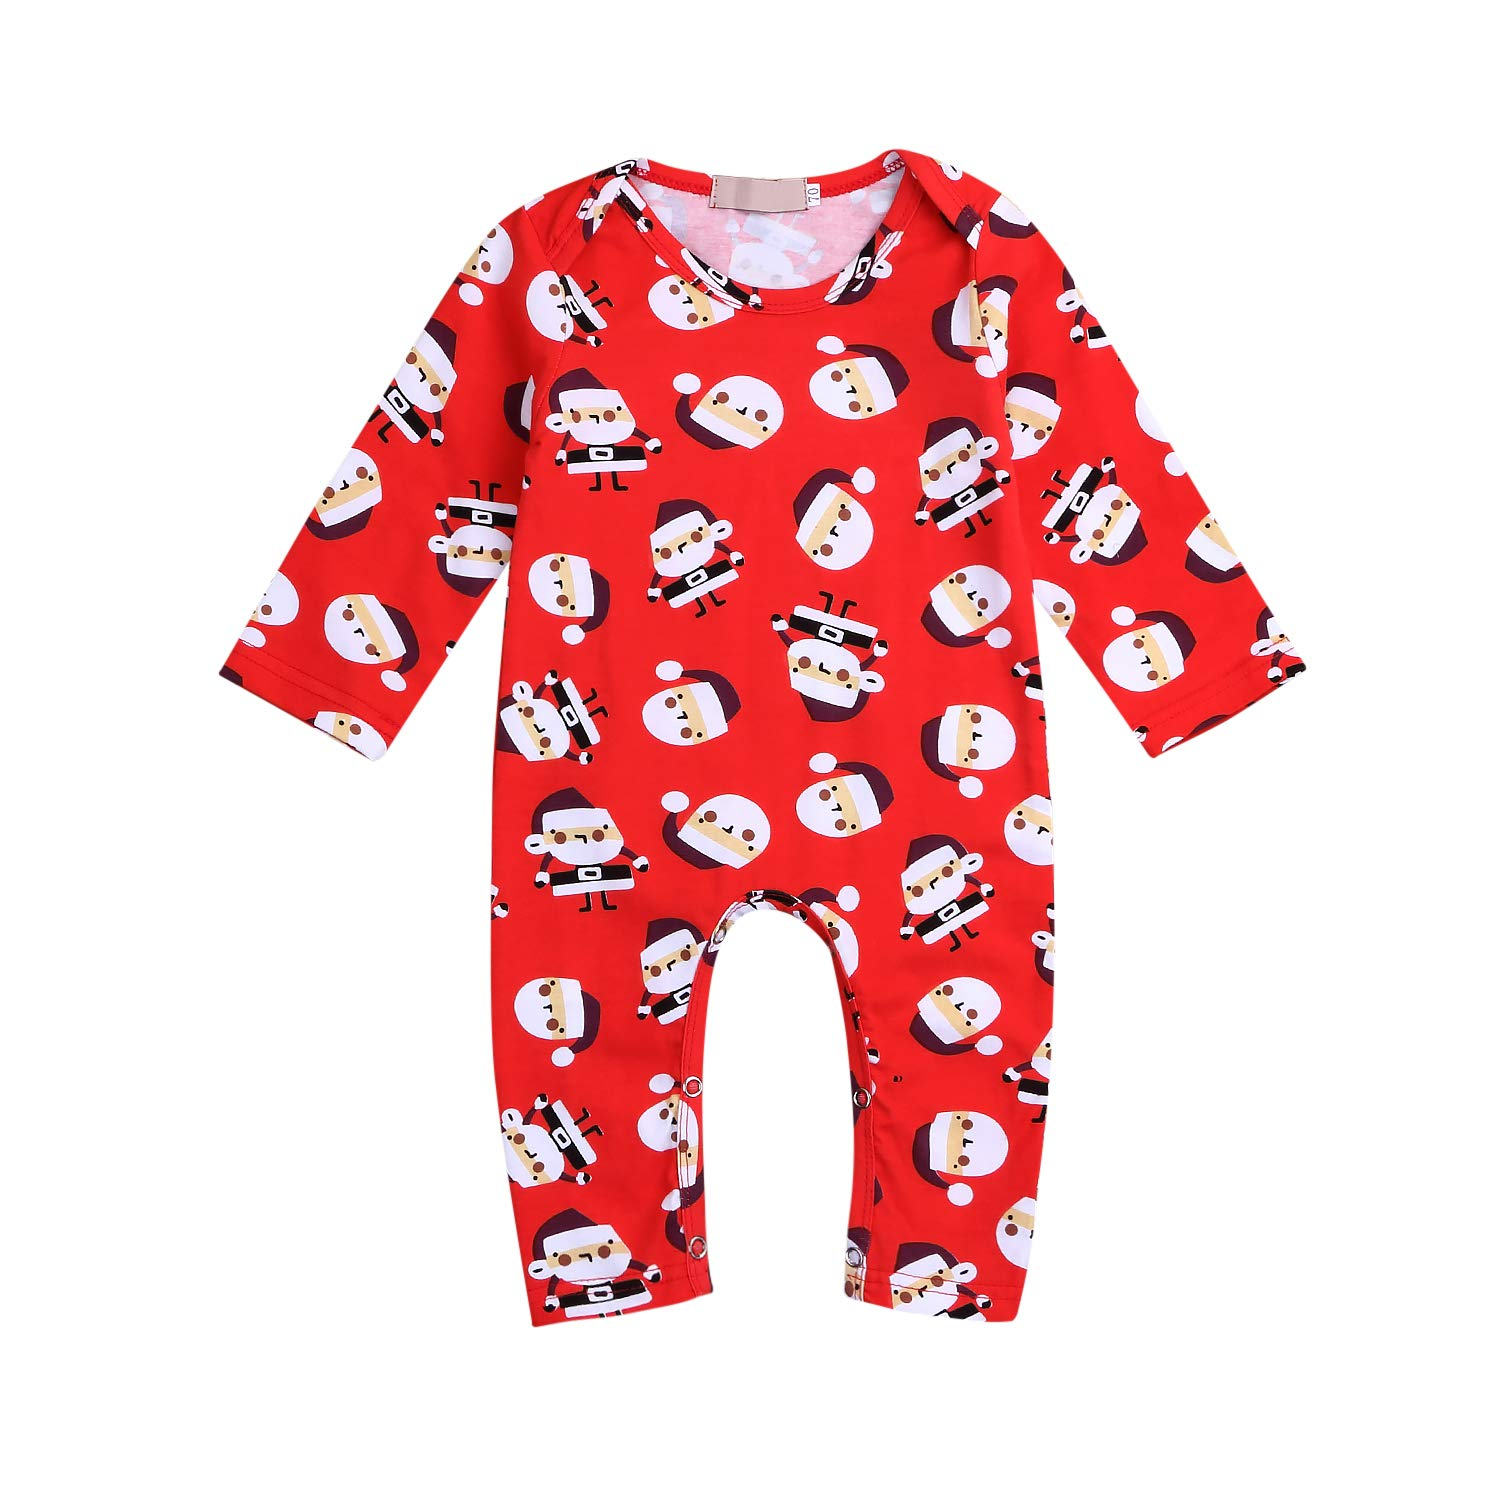 Baby Boy Romper Fall Outfits Set One Piece Jumpsuit Long Sleeve Bodysuit Newborn Infant Toddler Clothes mom's Little boy